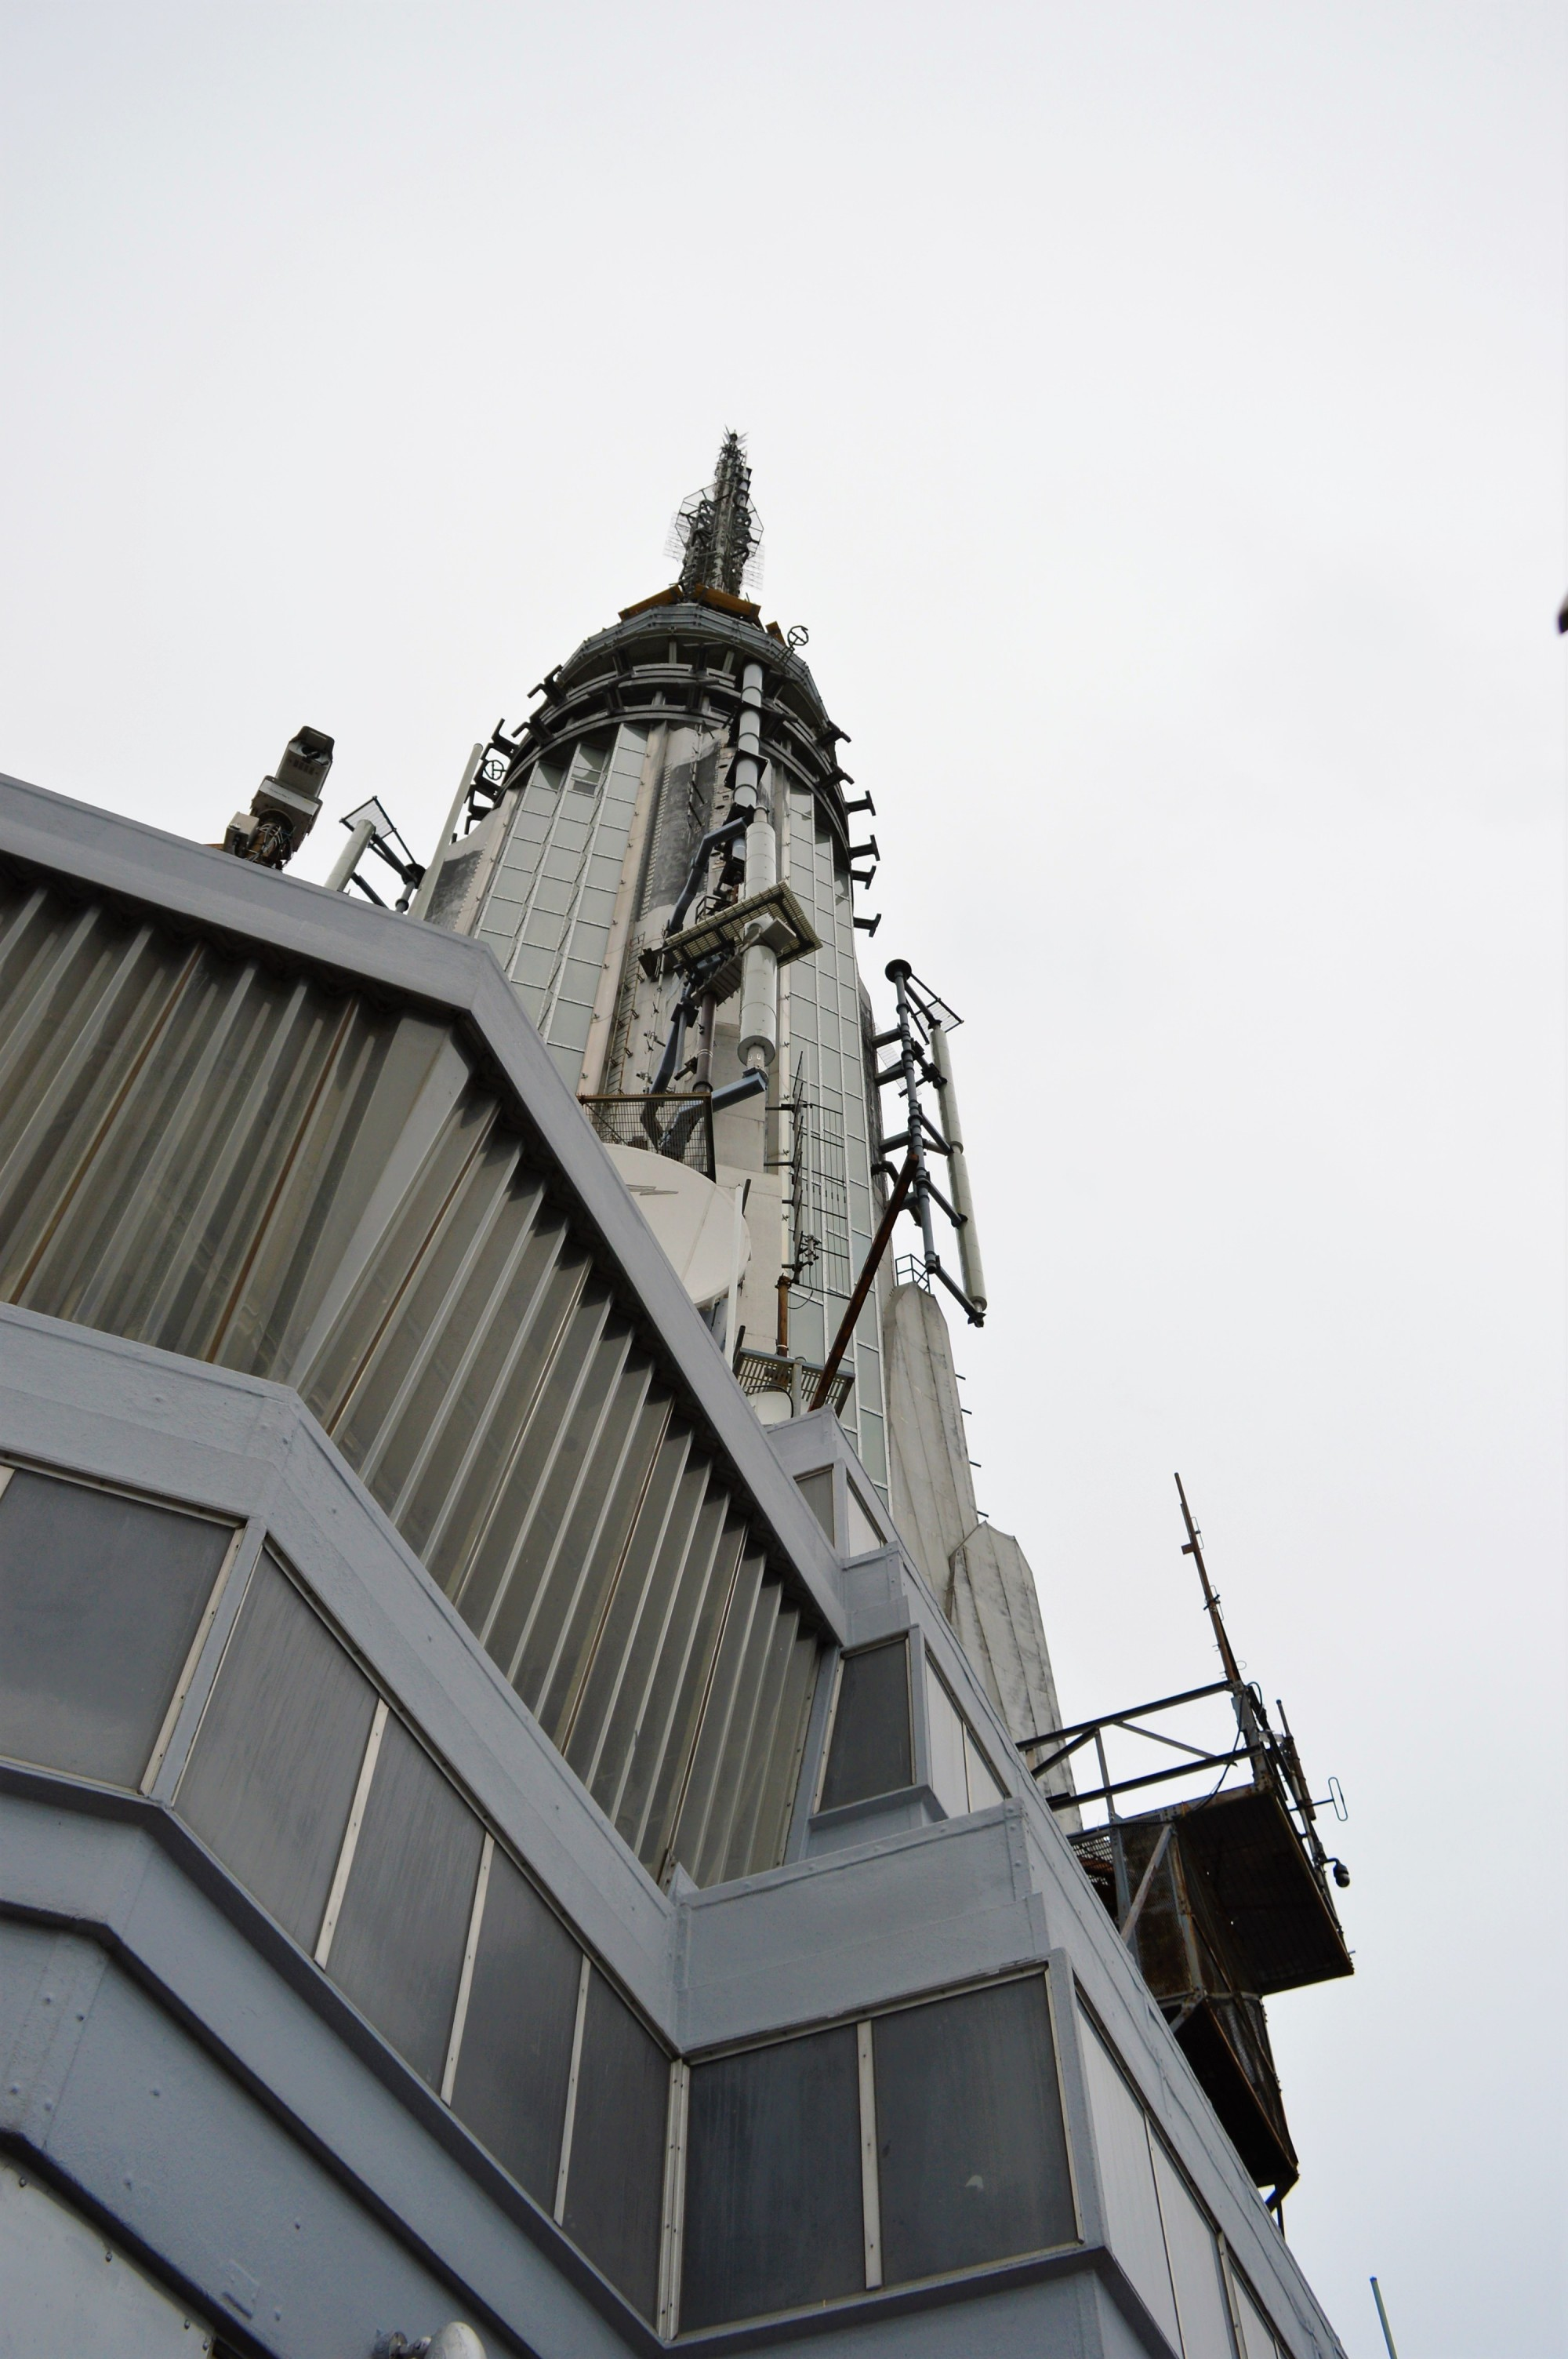 The Empire State Building Antenna